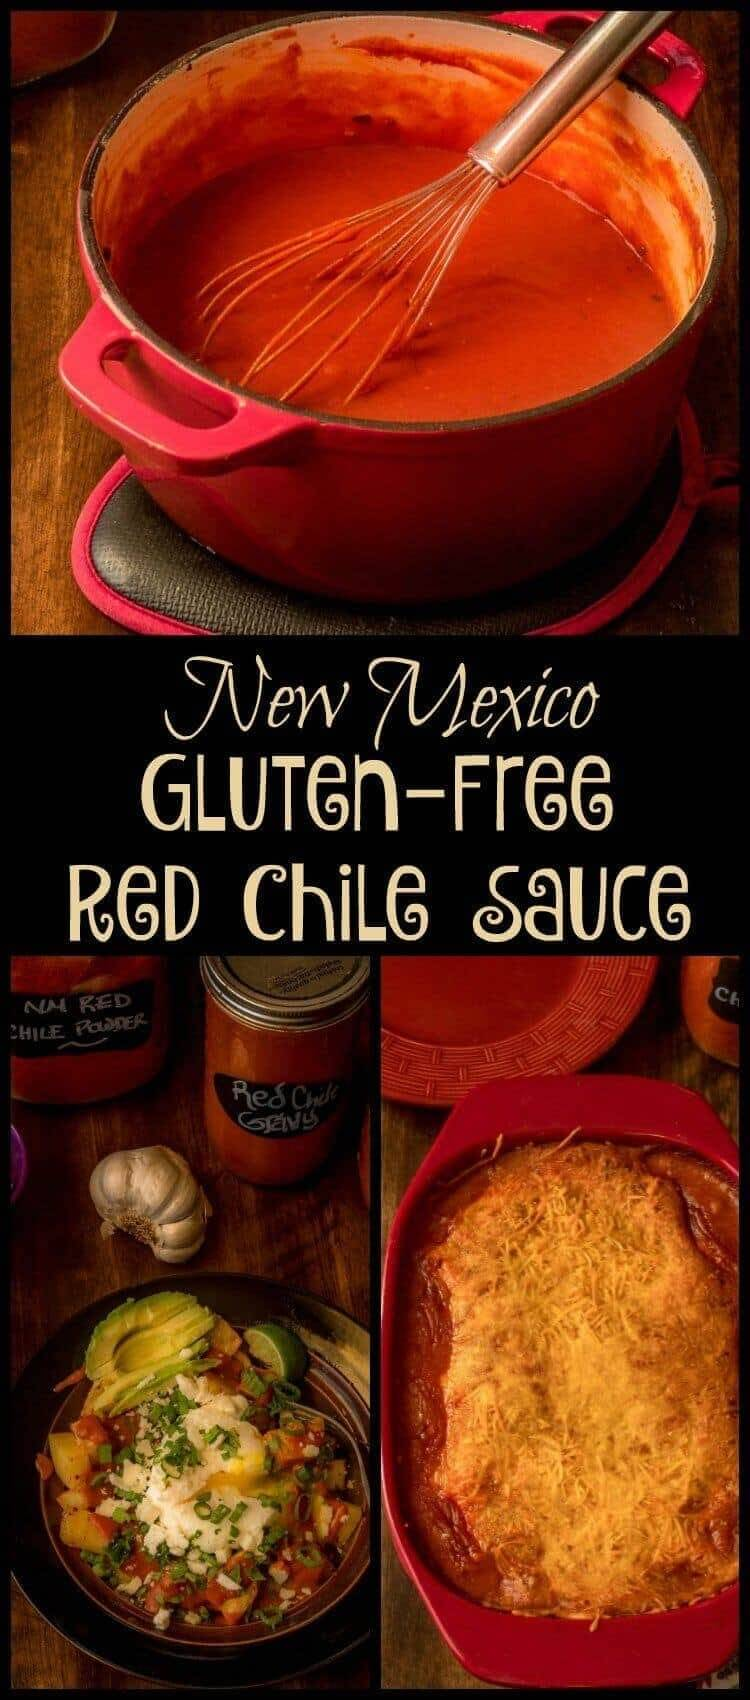 "New Mexico Gluten-Free Red Chile Sauce Pin -= All the intense, earthy, smoky flavor of ""regular"" New Mexico red chile sauce awaits in my New Mexico Gluten-Free Red Chile Sauce... In fact, I'd wager you cannot tell the difference side by side! #BobsRedMill #glutenfreeflour #NMredchilesauce #redchilesauce #NMchile #redchileenchiladas"